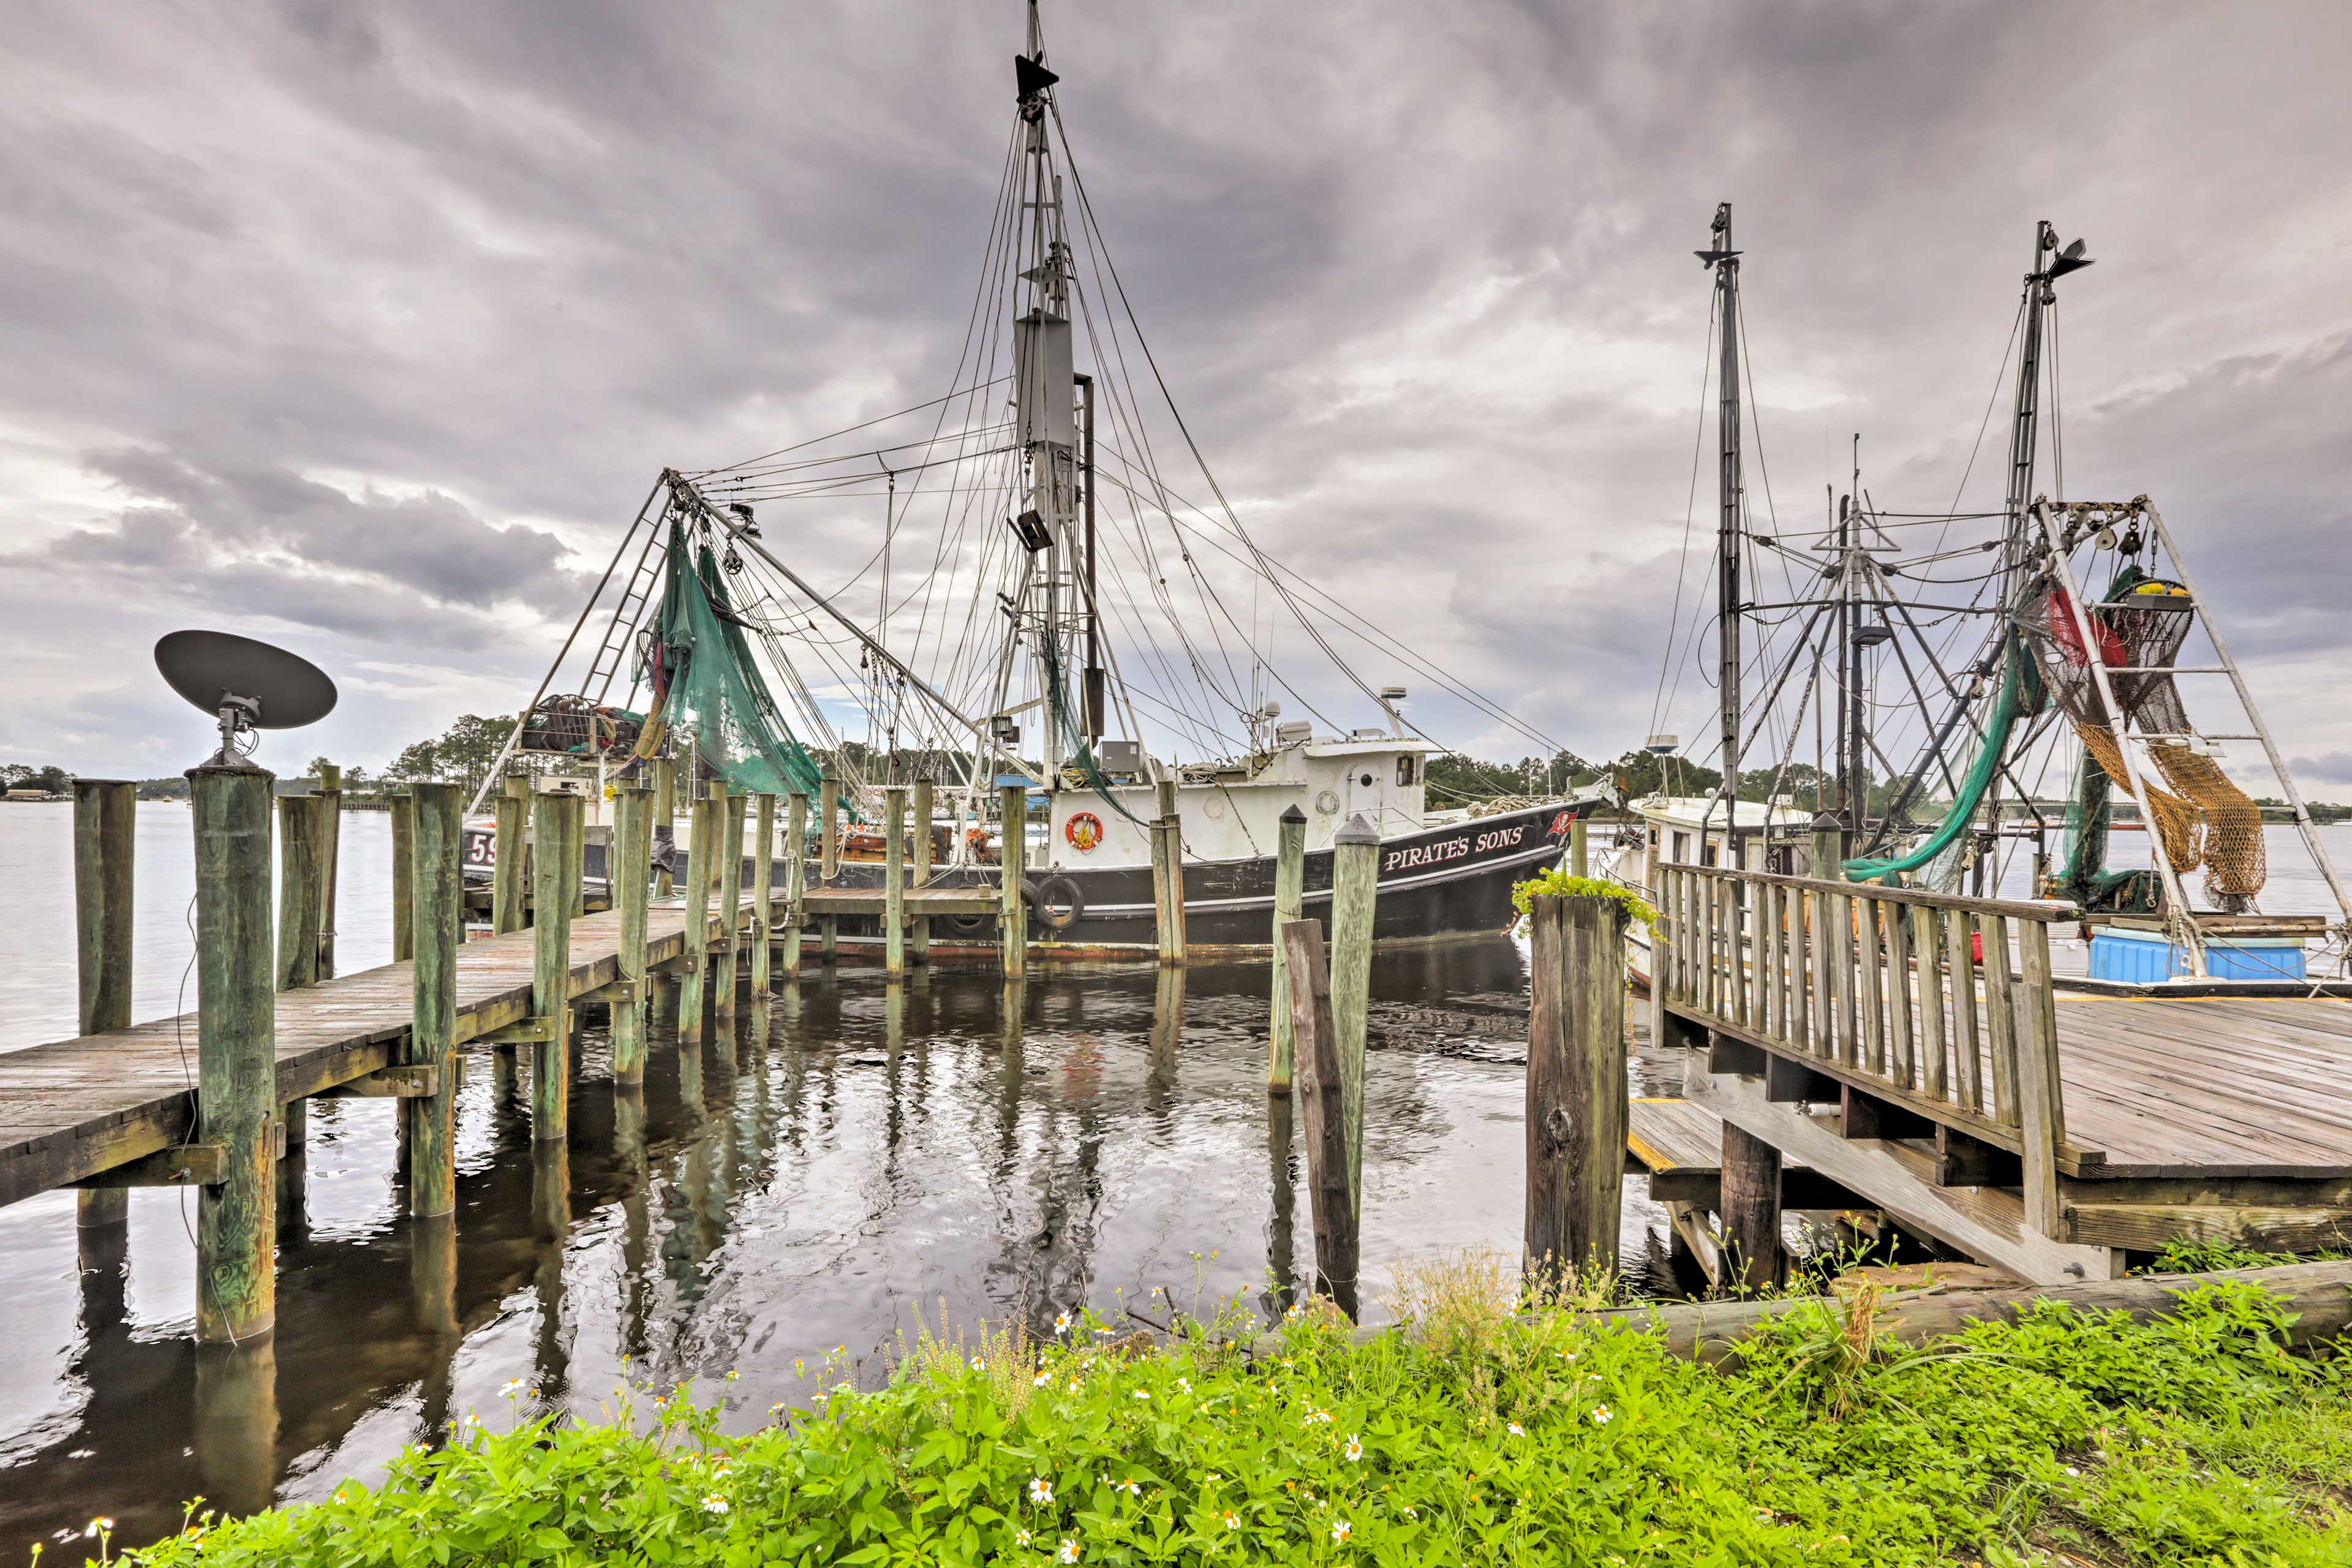 Discover Carrabelle with ease from this ideally located vacation rental!